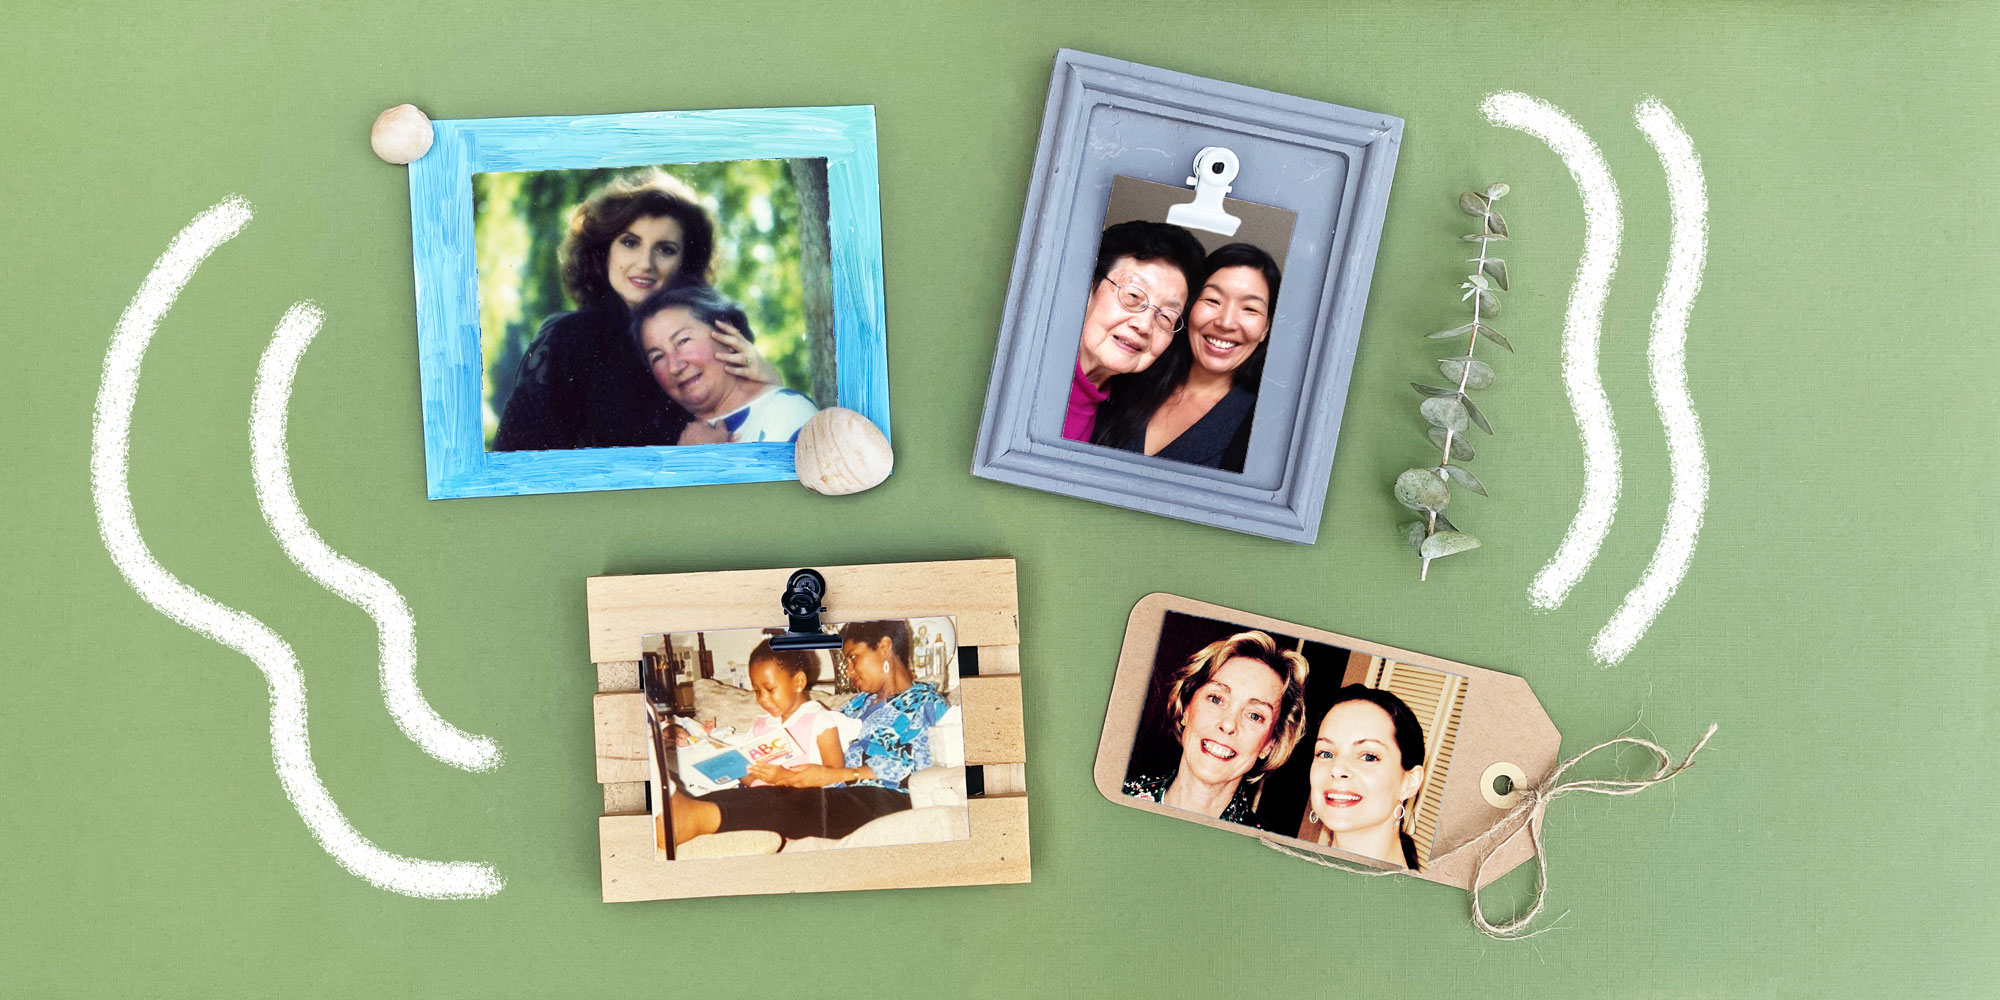 Four photos of women with their mothers sit on different colored pieces of paper on a green background.